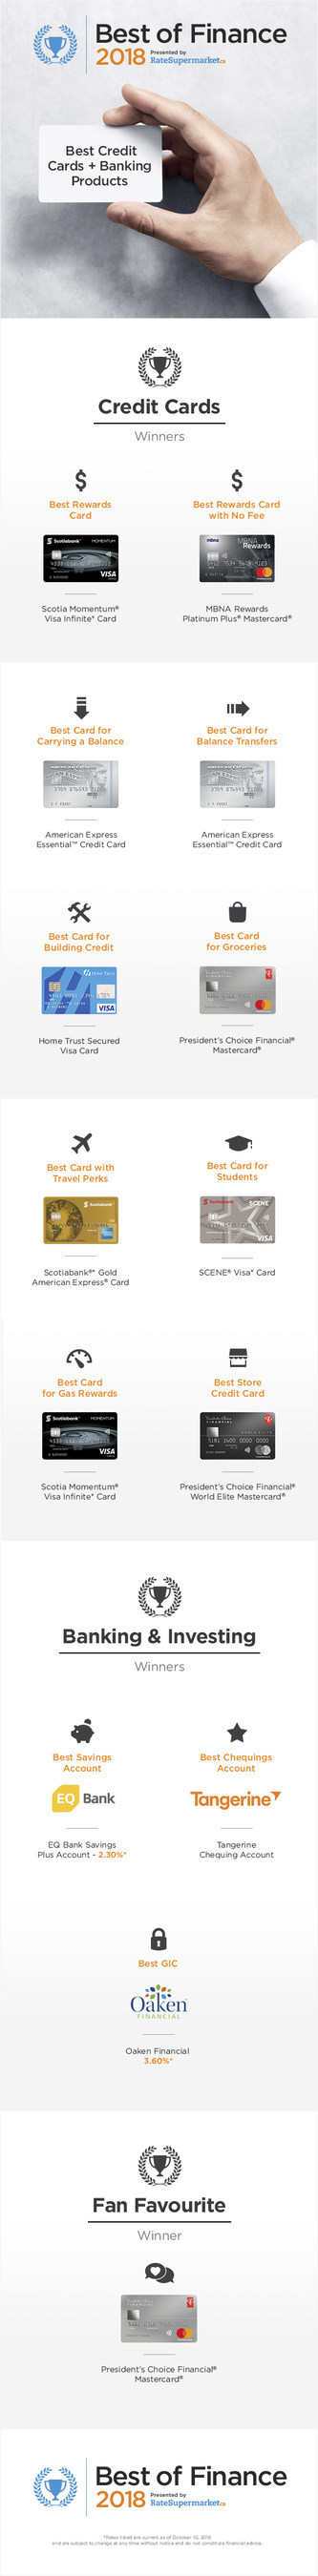 The Best Credit Cards and Banking Products of 2018 Ranked by RateSupermarket.ca (CNW Group/RateSupermarket.ca)